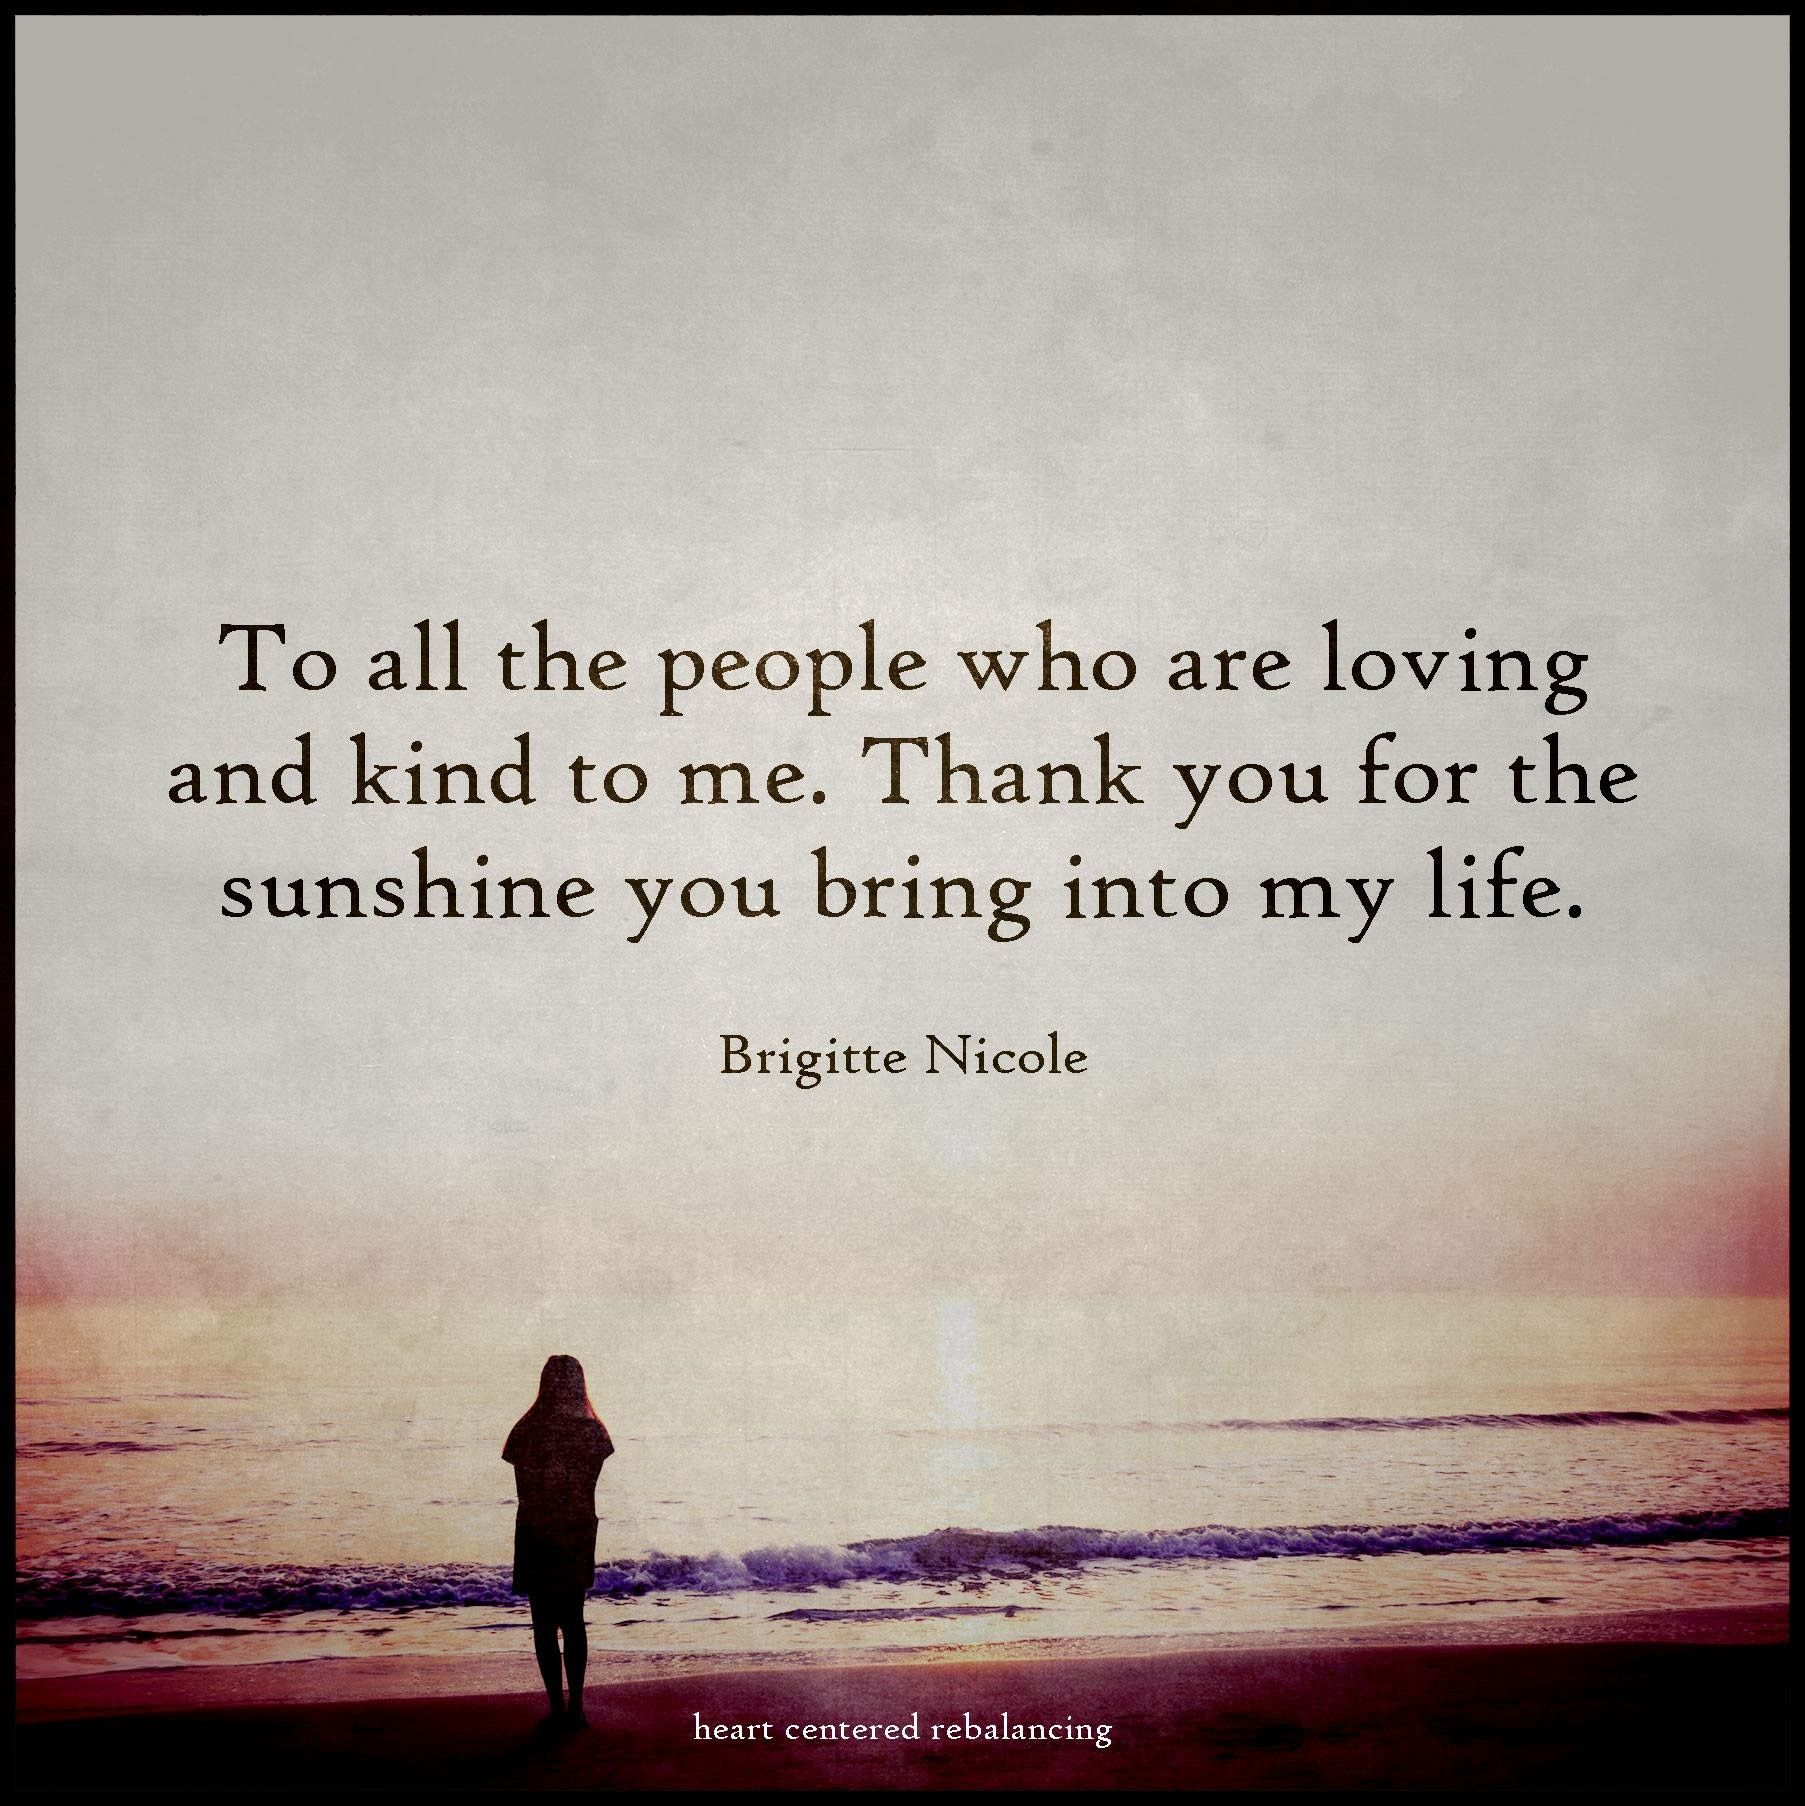 Thank You For All The Wonderful People In My Life That Love And Support Me  Just As Much As I Do For Them.